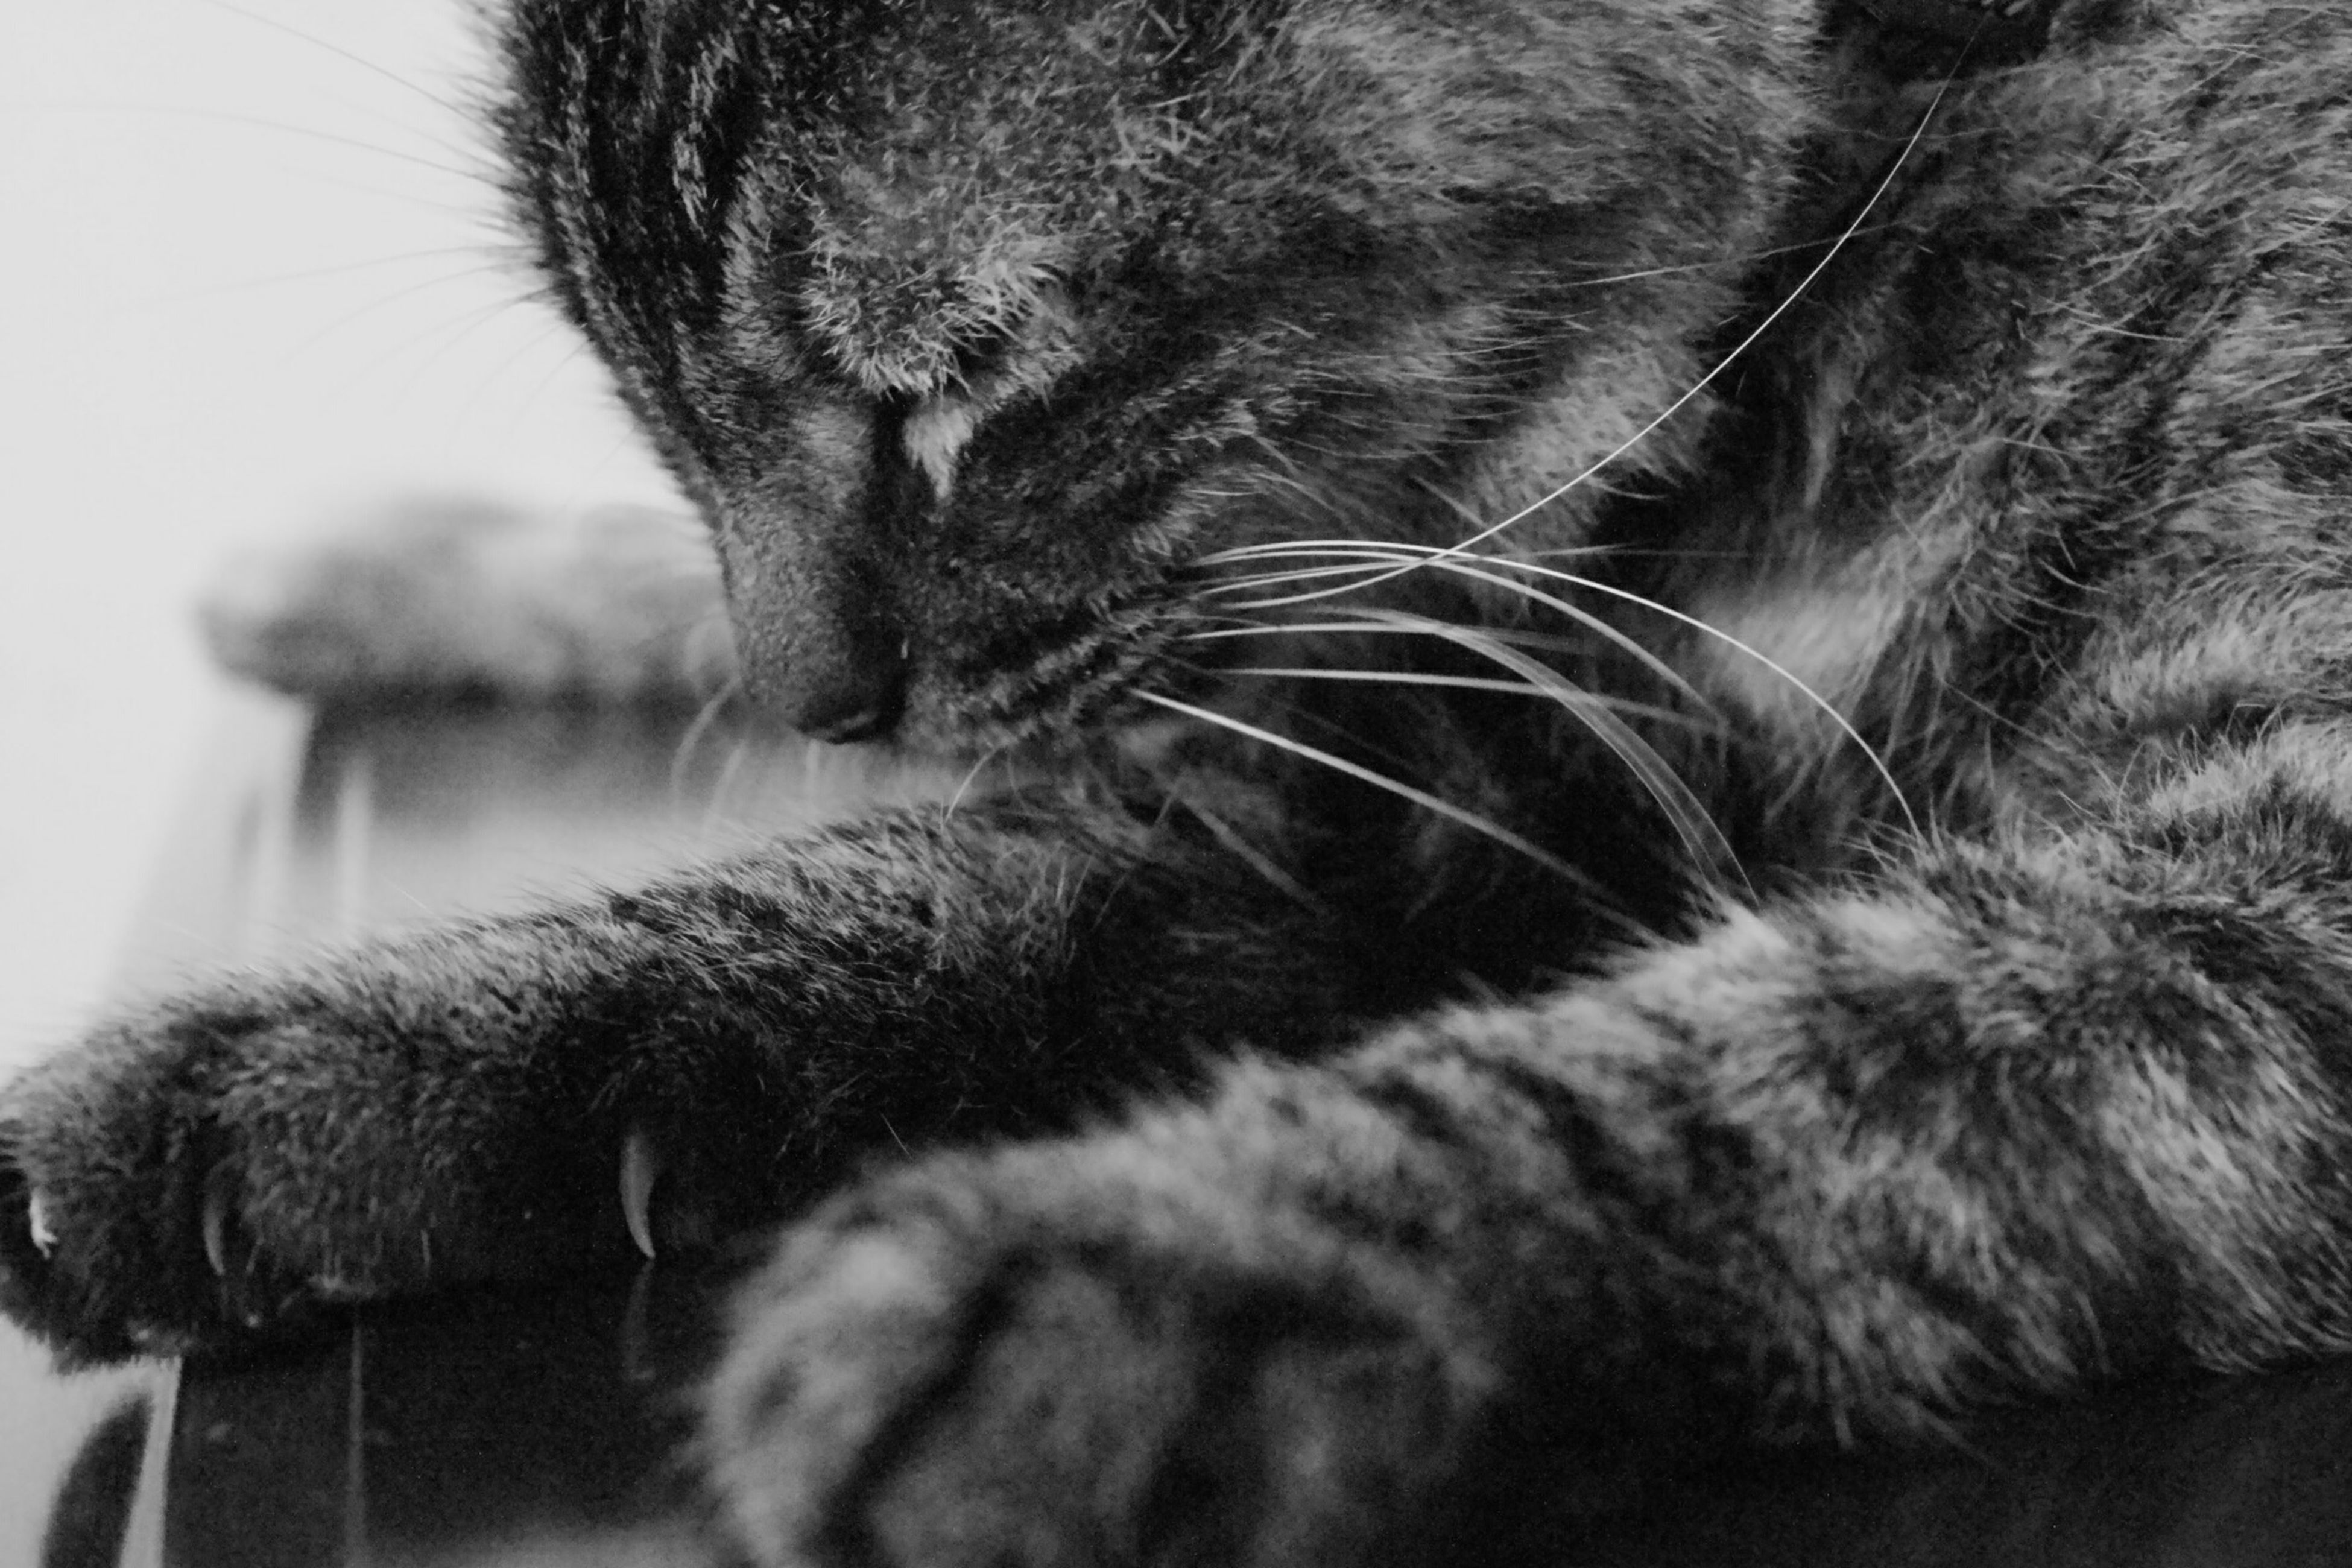 domestic cat, cat, feline, one animal, pets, domestic animals, animal themes, mammal, whisker, close-up, indoors, relaxation, animal head, animal body part, resting, whiskers, eyes closed, looking away, no people, tabby